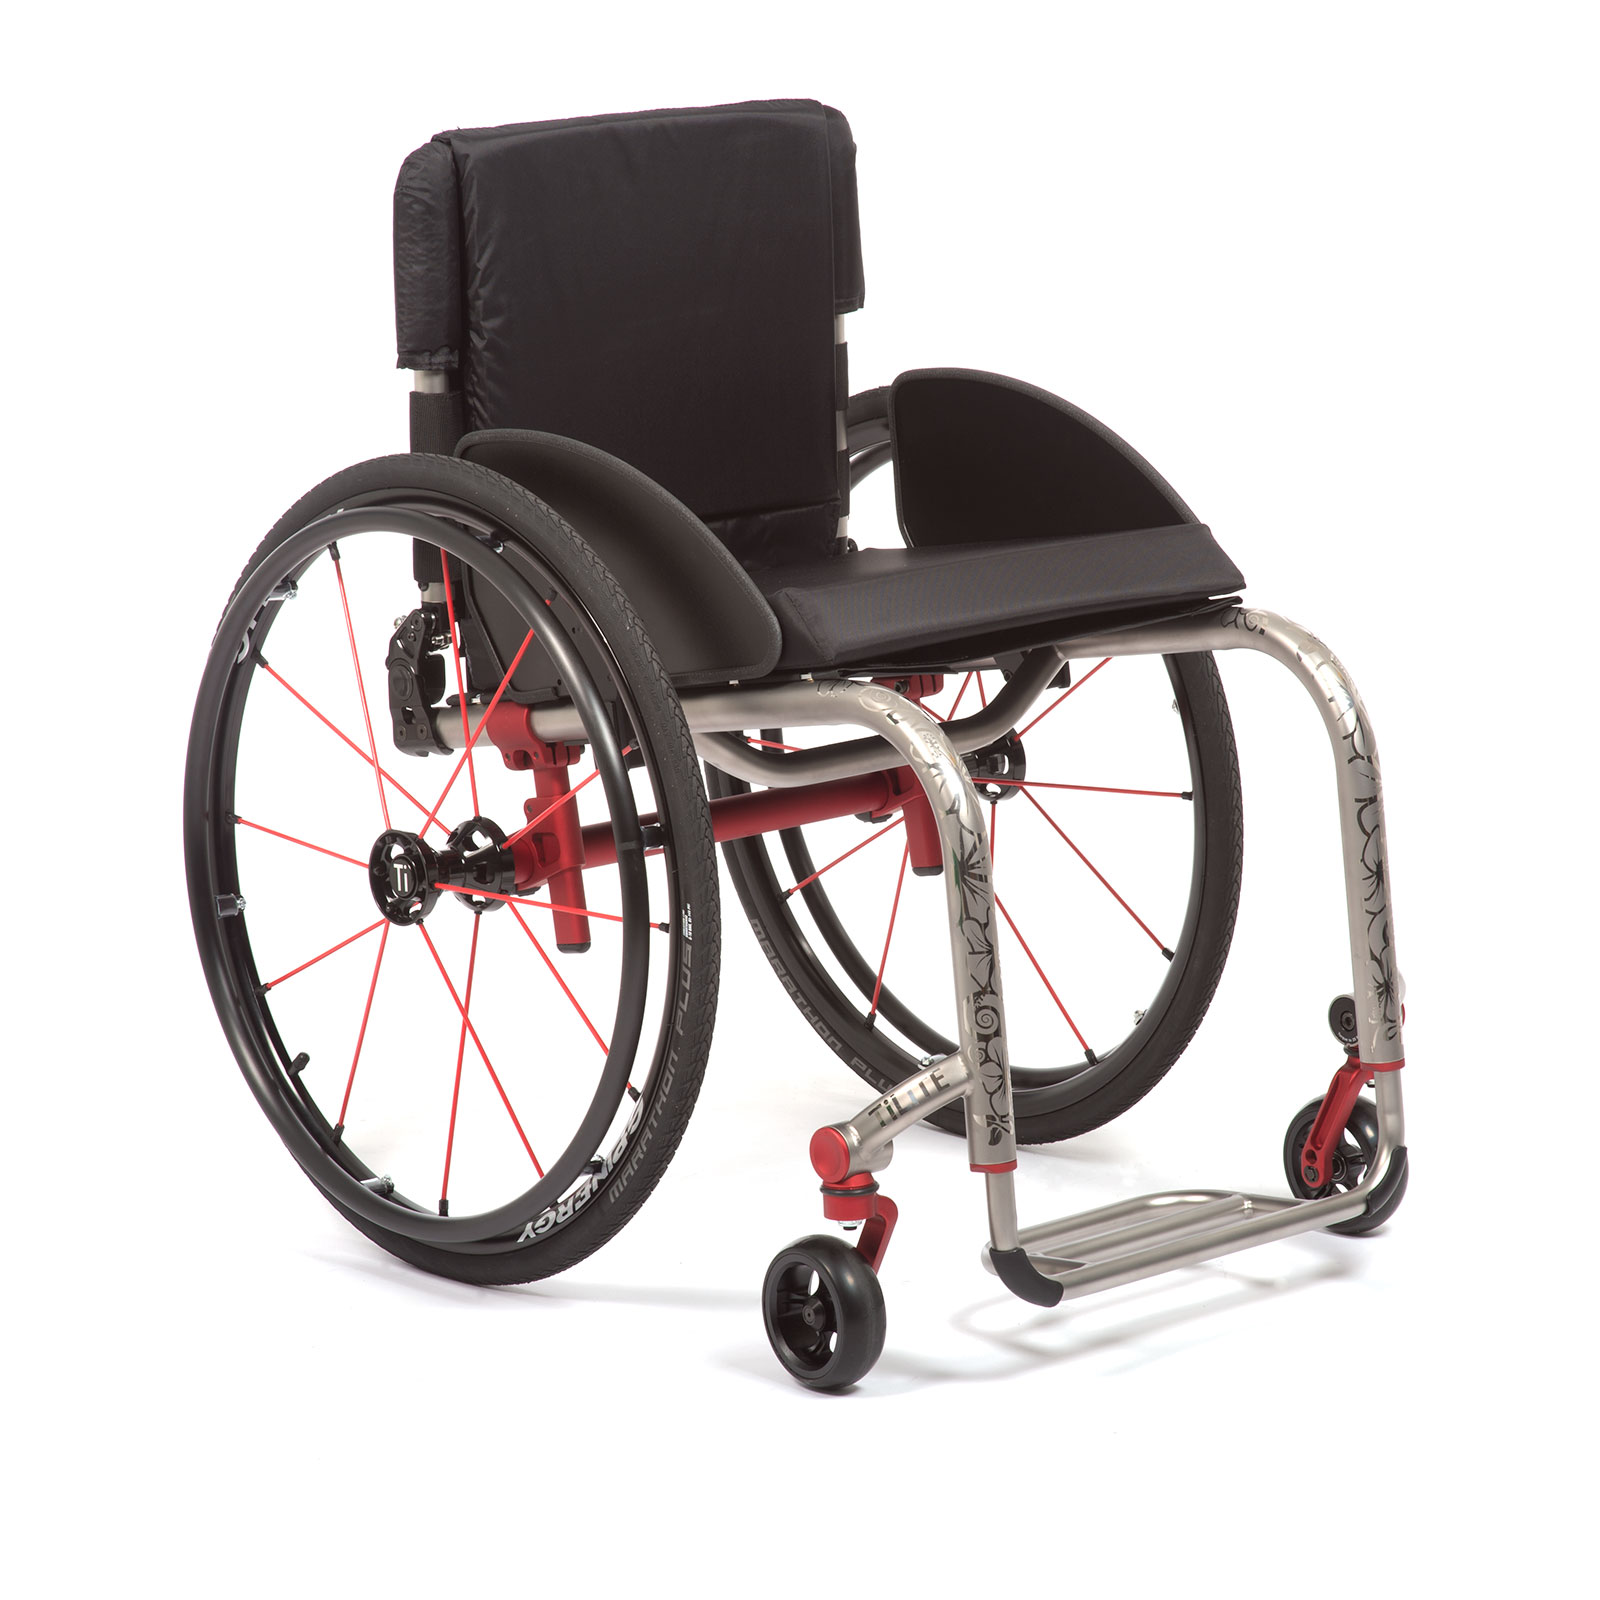 The Front Mid-Right of the Wheelchair